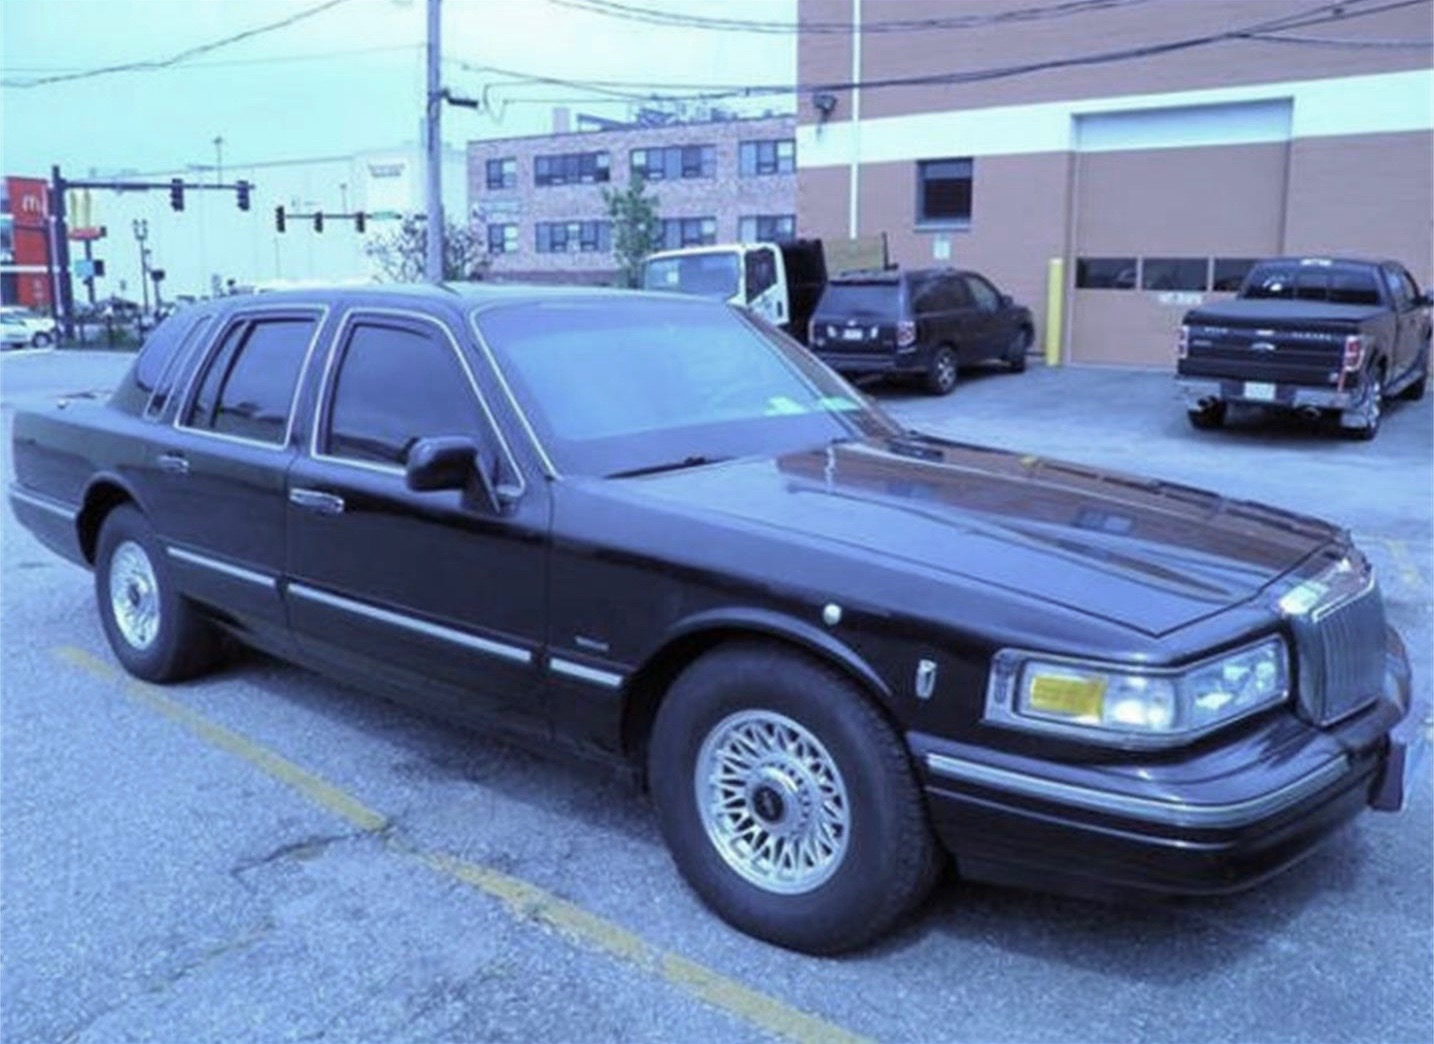 Armor-protected Lincoln Town Car for less than 10 grand